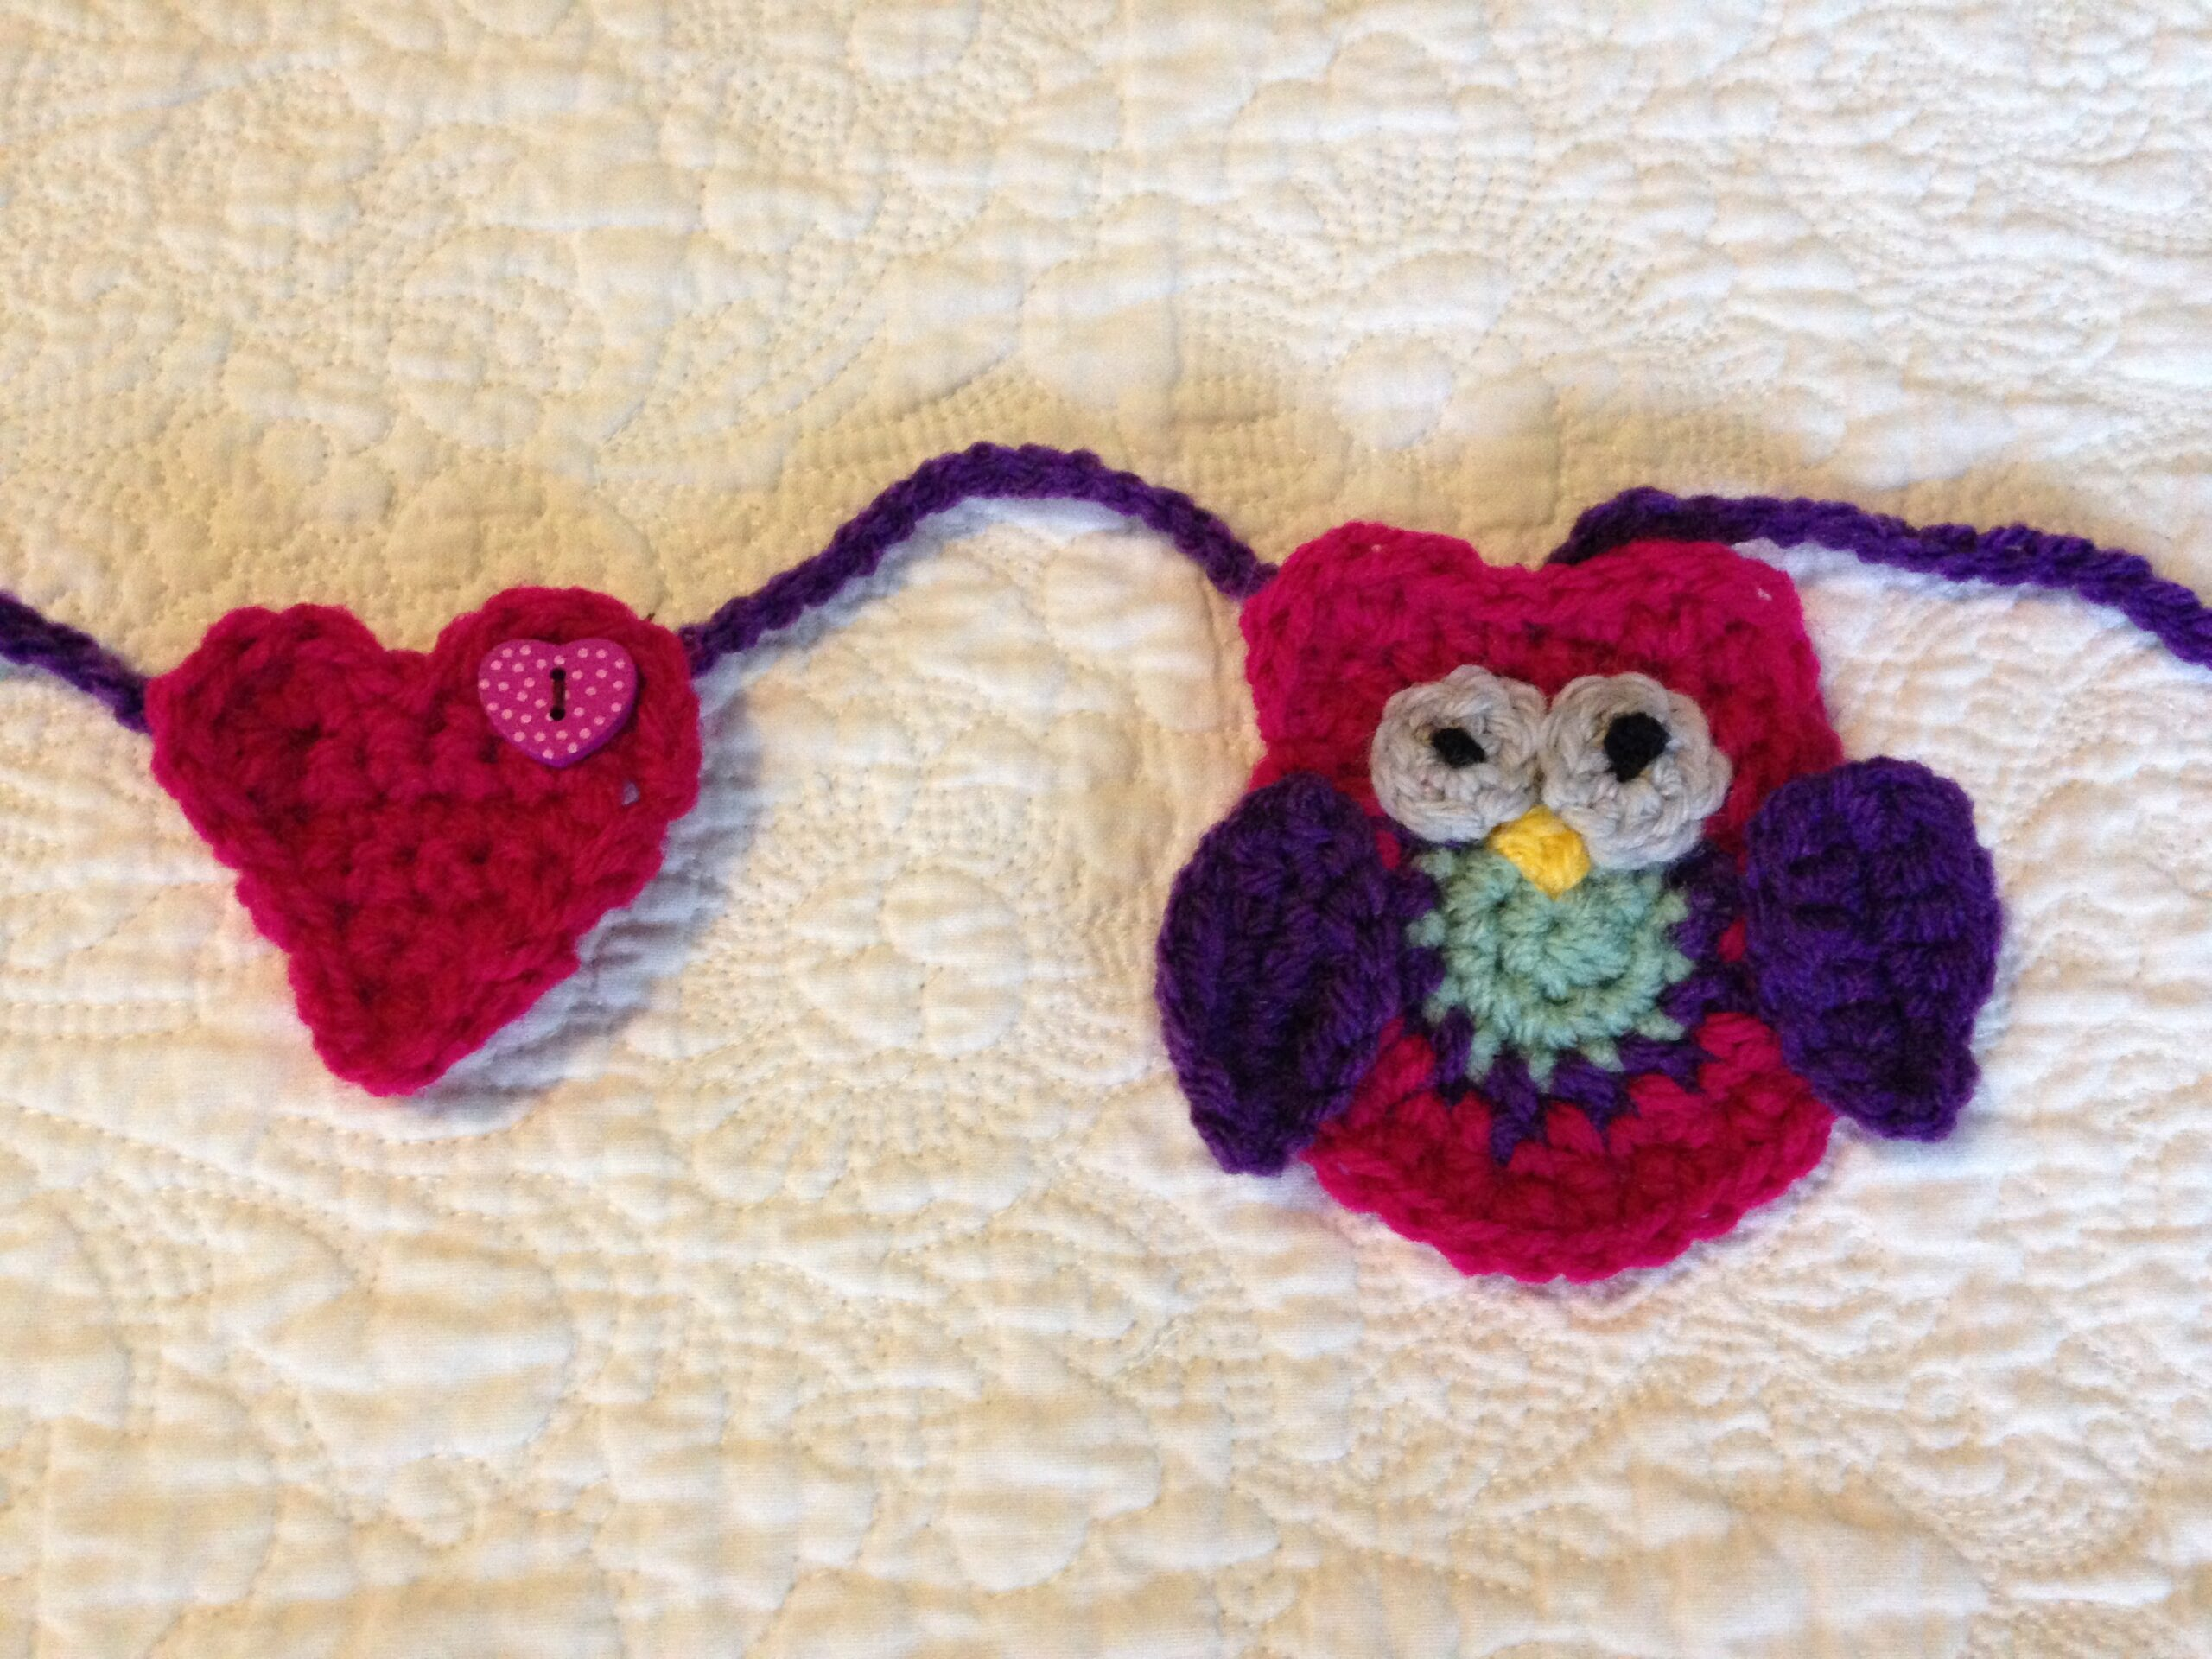 Heart and Owl crocheted bunting.